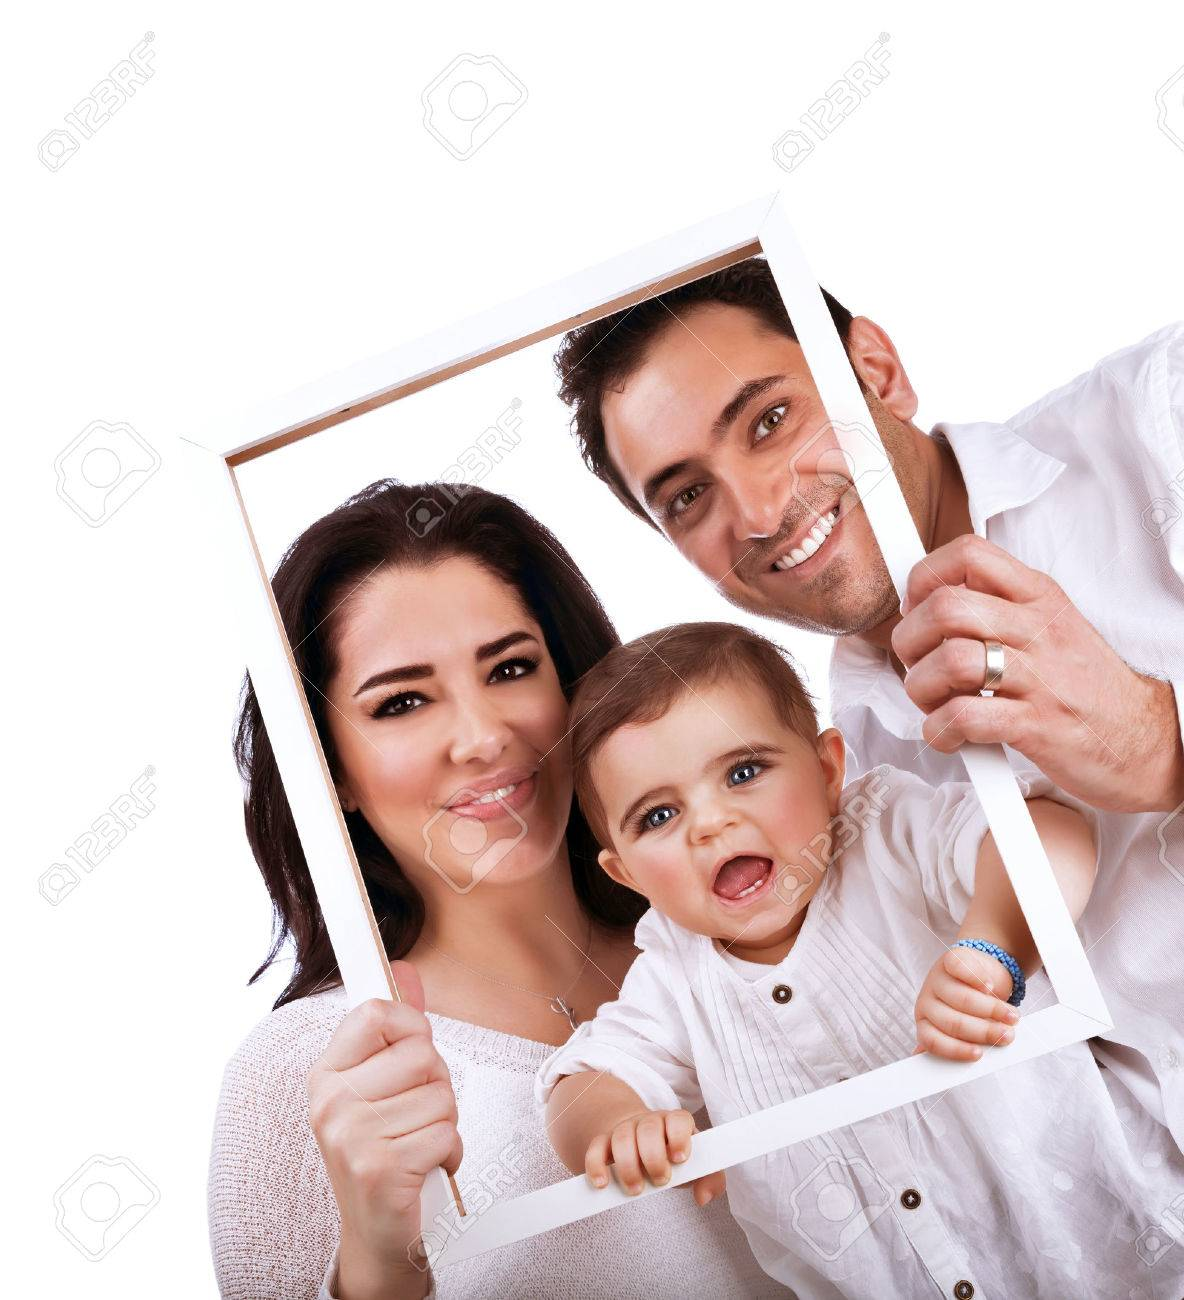 Happy family portrait isolated on white background holding in hands frame nice picture of